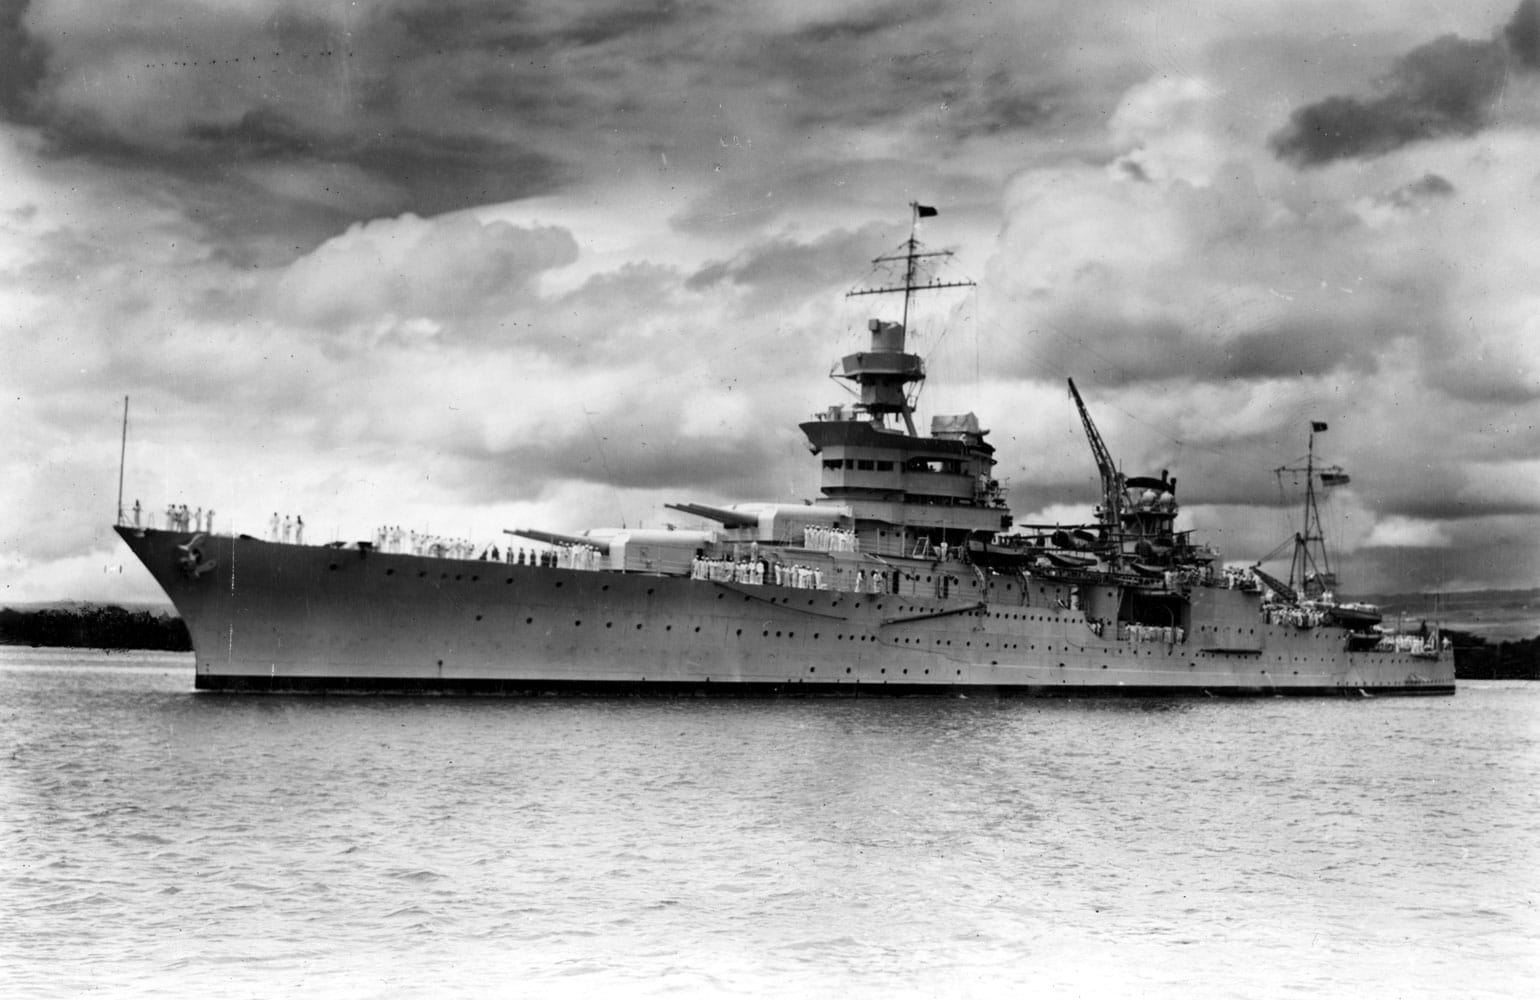 The United States Navy Portland-class heavy cruiser USS Indianapolis underway in Pearl Harbor in 1937. The ship was sunk on July 30, 1945 by an Imperial Japanese submarine in the Philippine Sea following delivery of parts for Little Boy, the first atomic bomb used in combat, to the United States air base at Tinian.